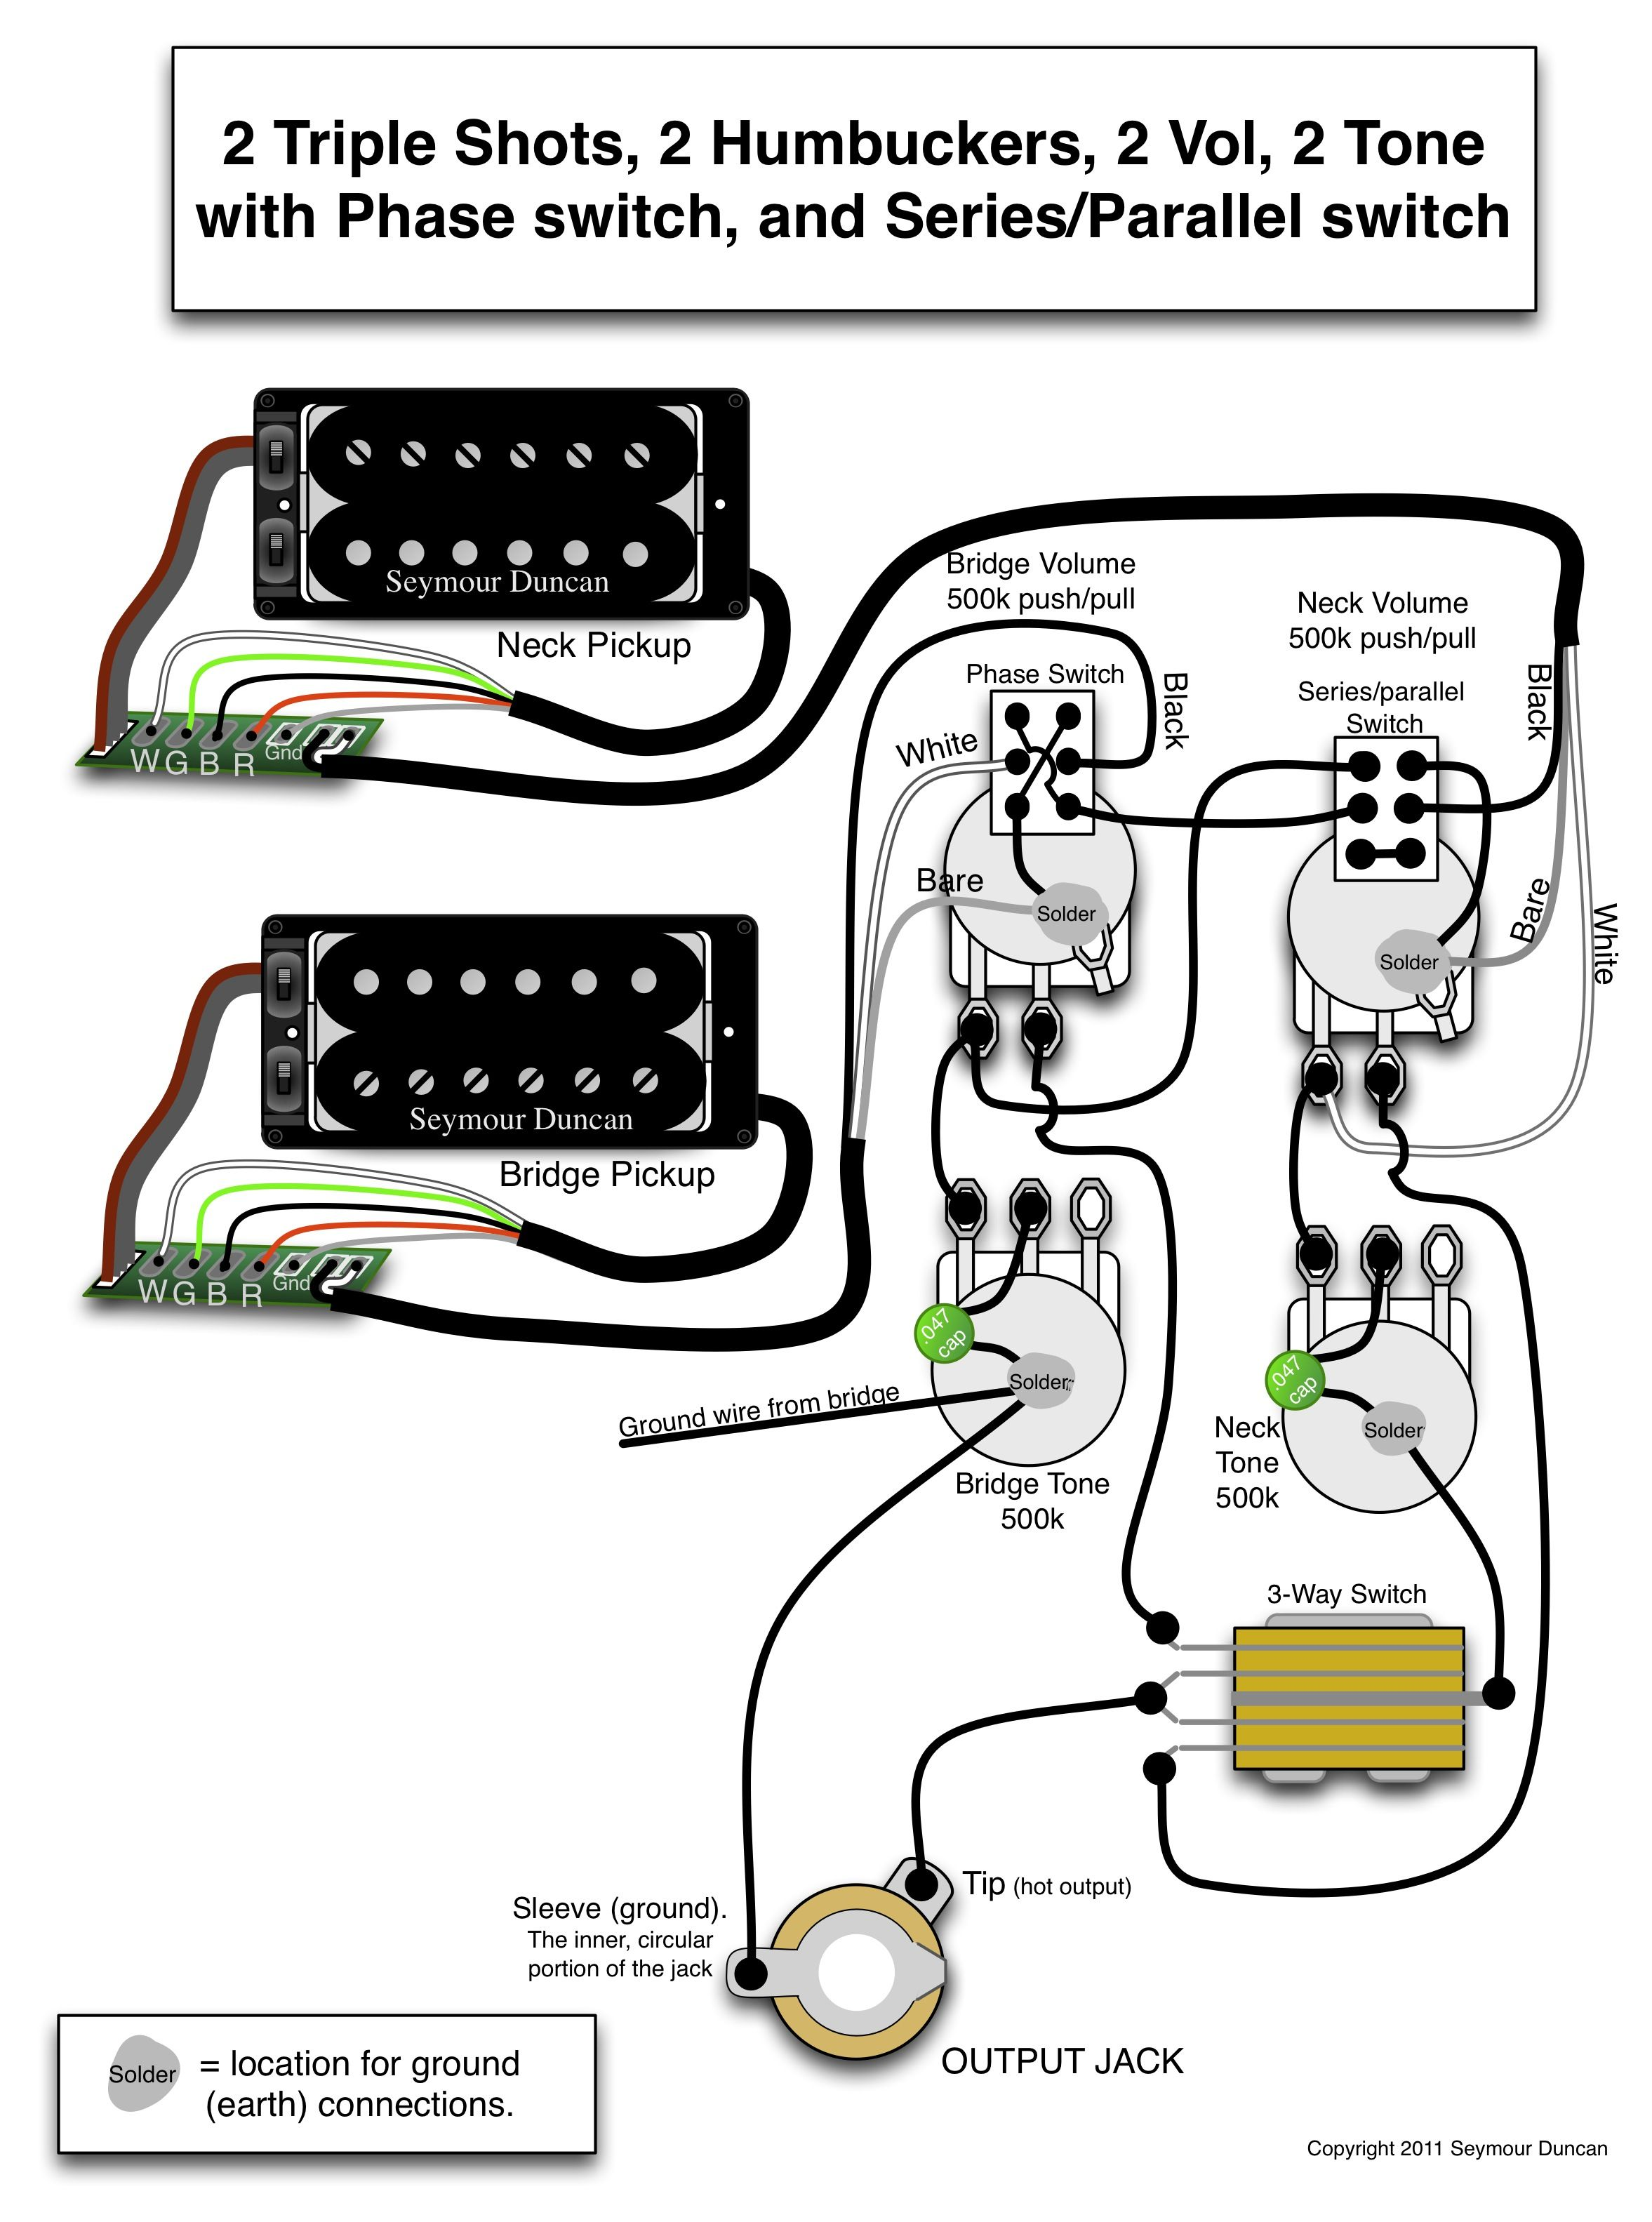 Seymour Duncan wiring diagram - 2 Triple Shots, 2 Humbuckers, 2 Vol ...